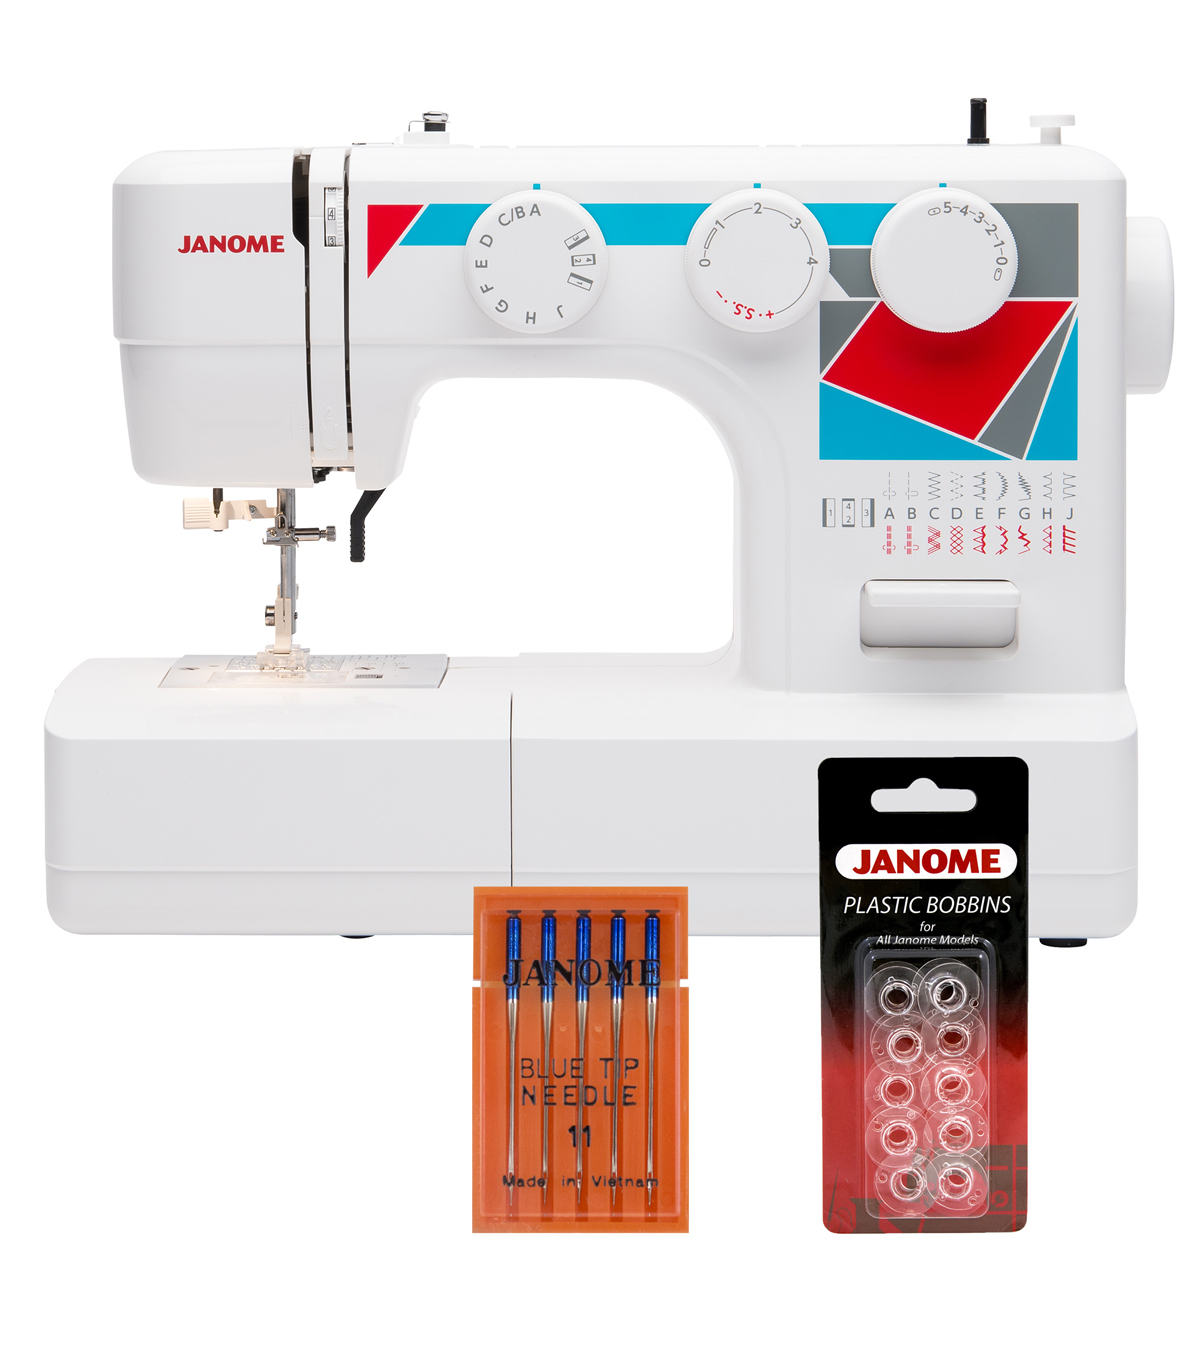 Janome MOD-19 Sewing Machine with Bonus Accessories